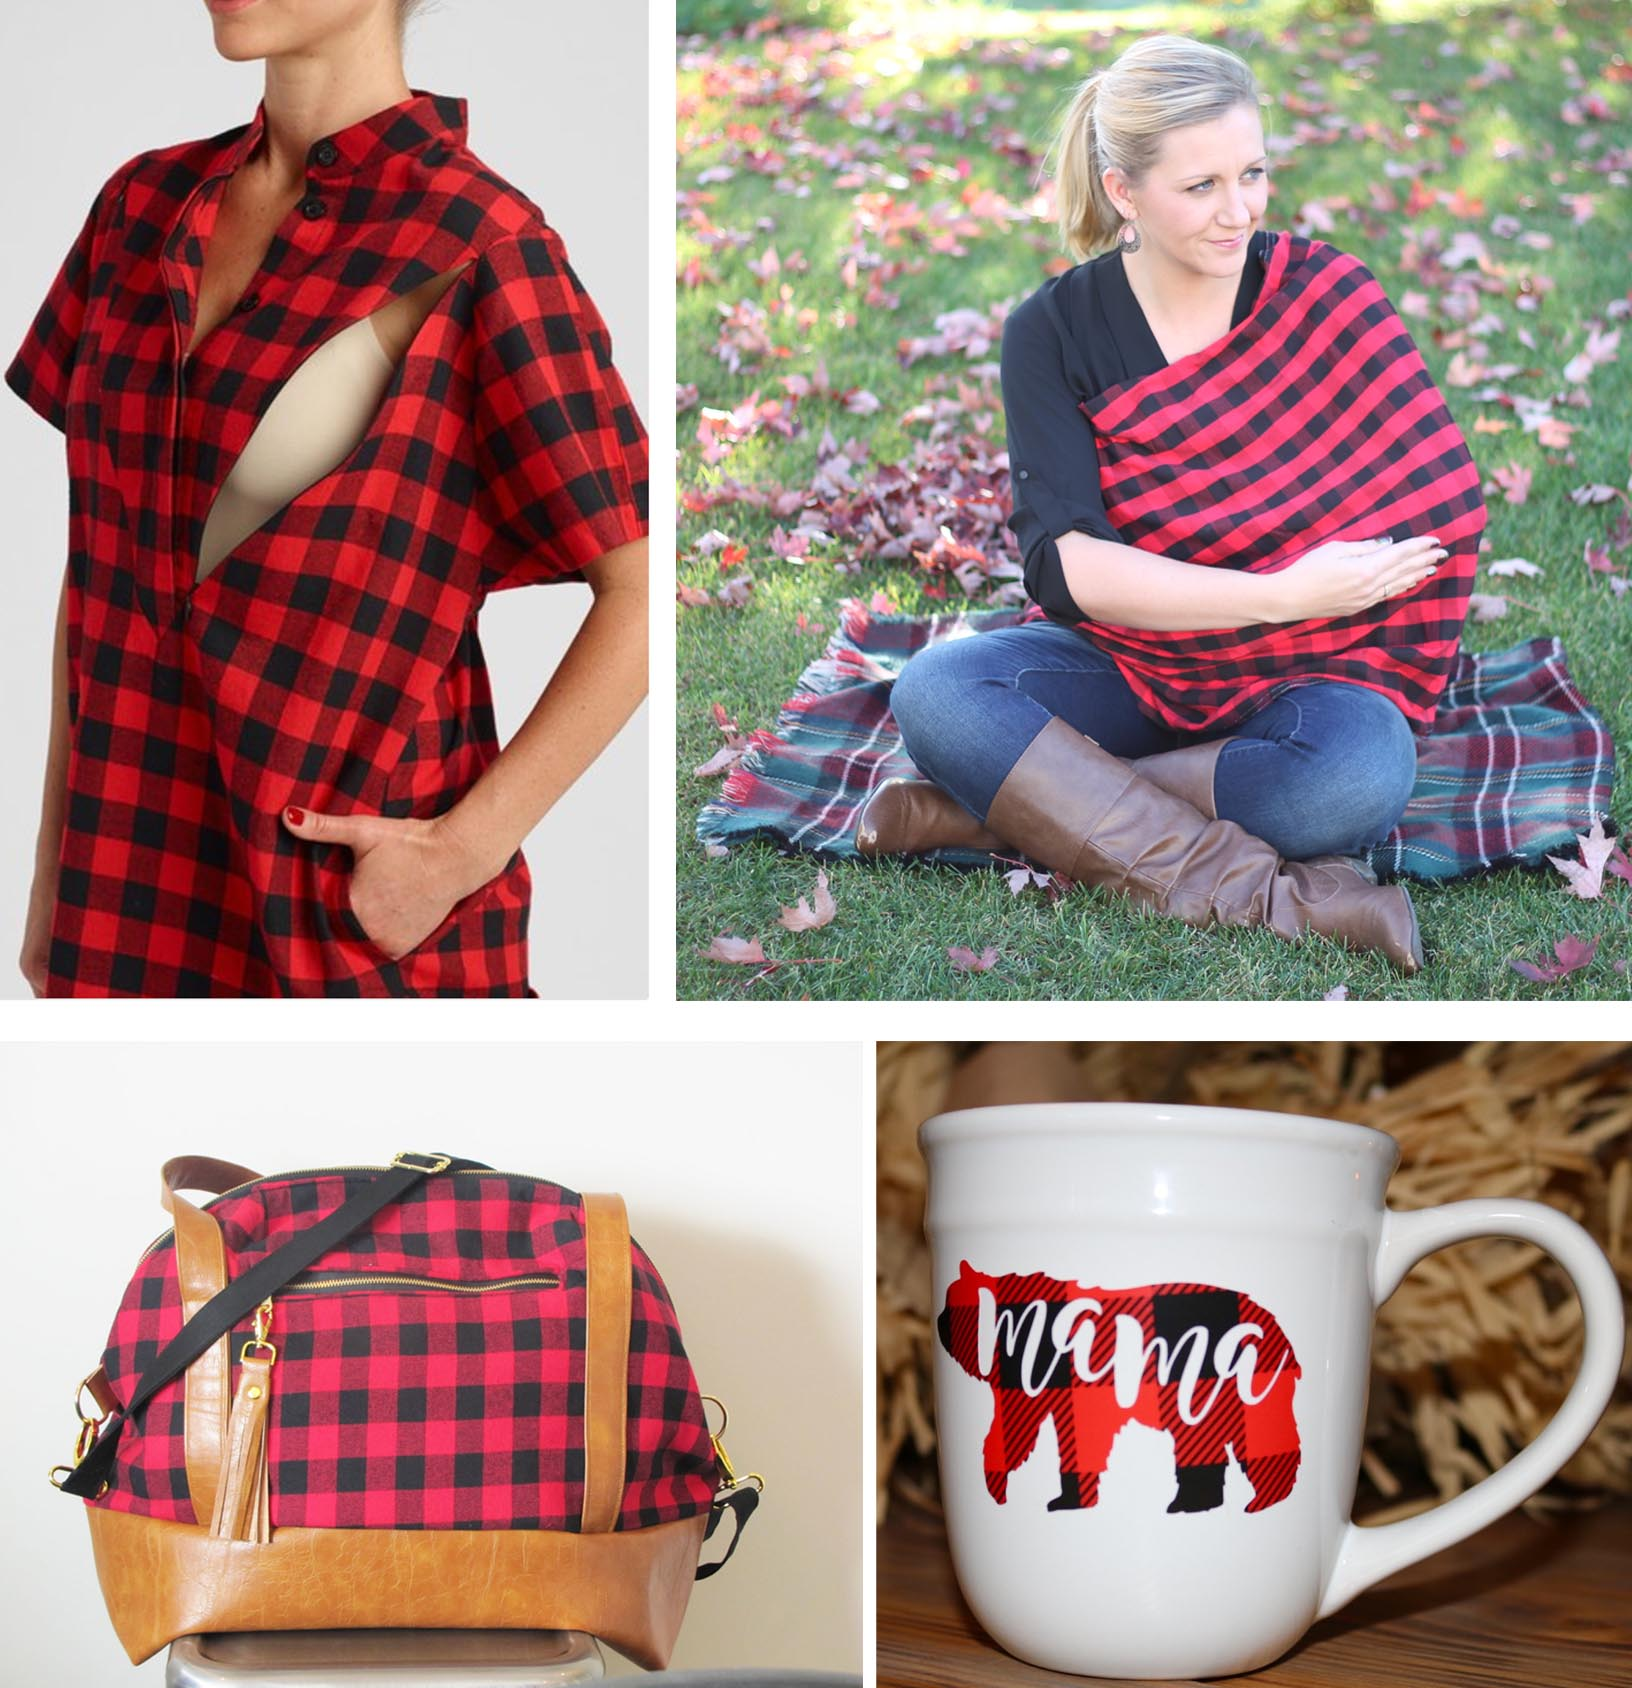 For Mama We Are Sort Of Obsessed With These Rustic Chic Buffalo Plaid Ideas Suggest Adding To Your Baby Registry Or Gifting Them A